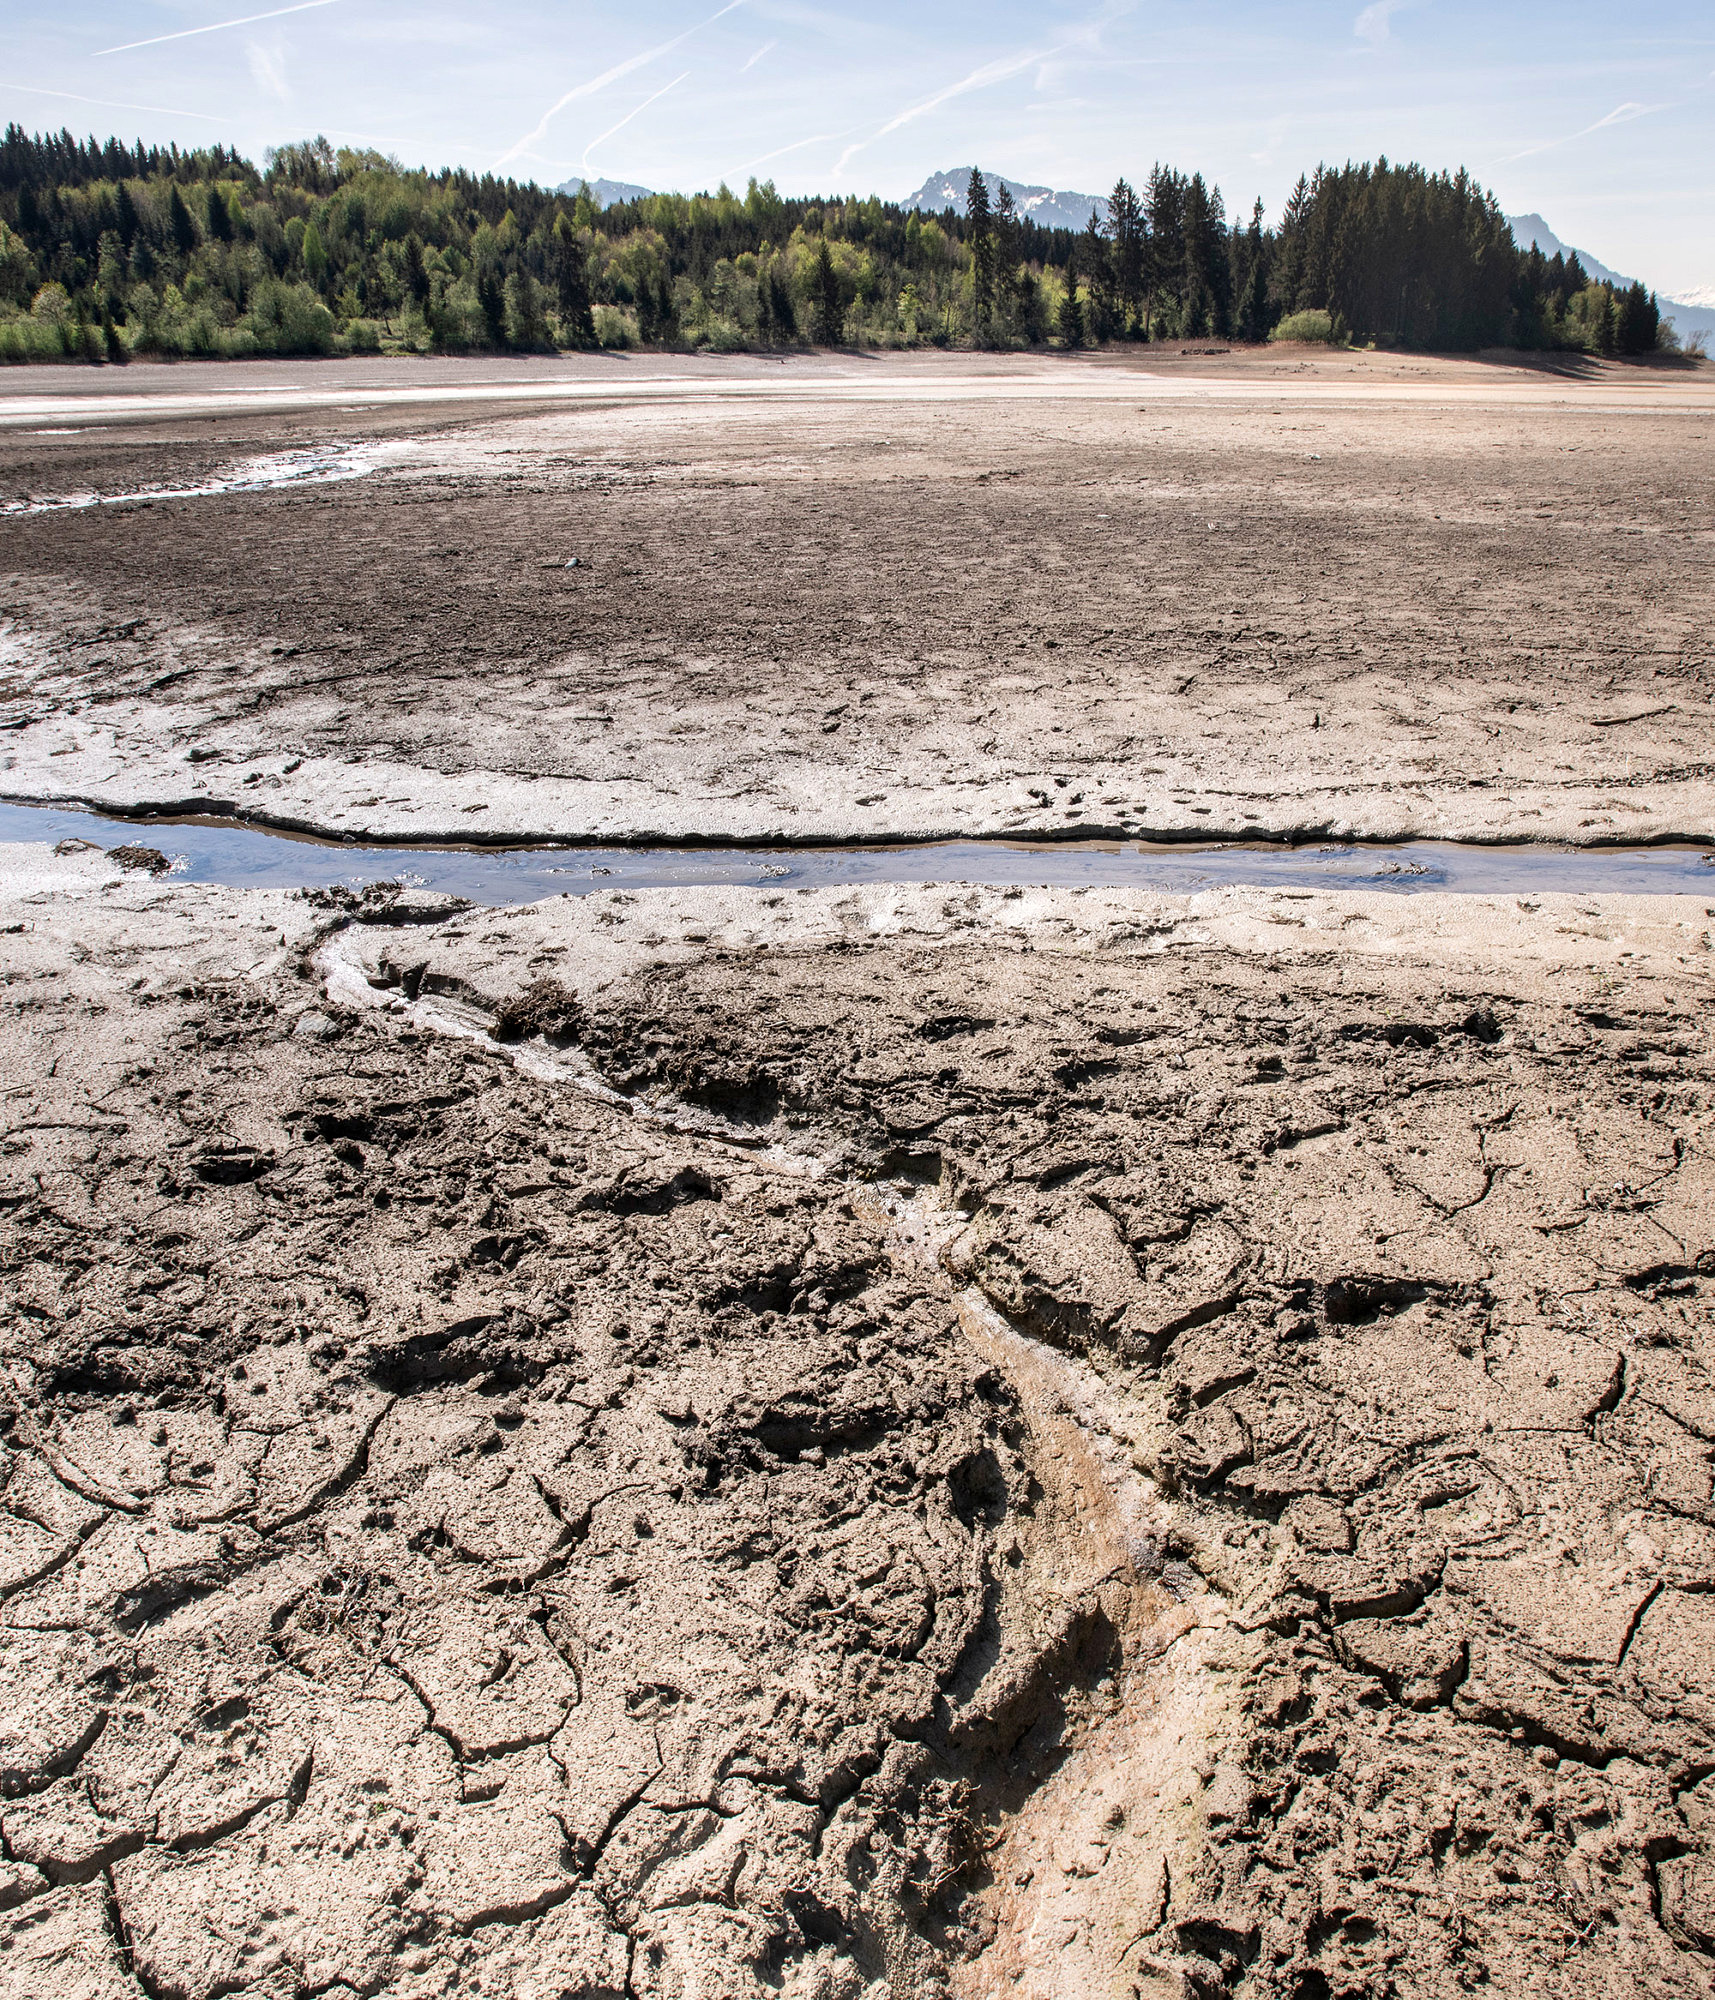 Drought and arid conditions caused by water shortages